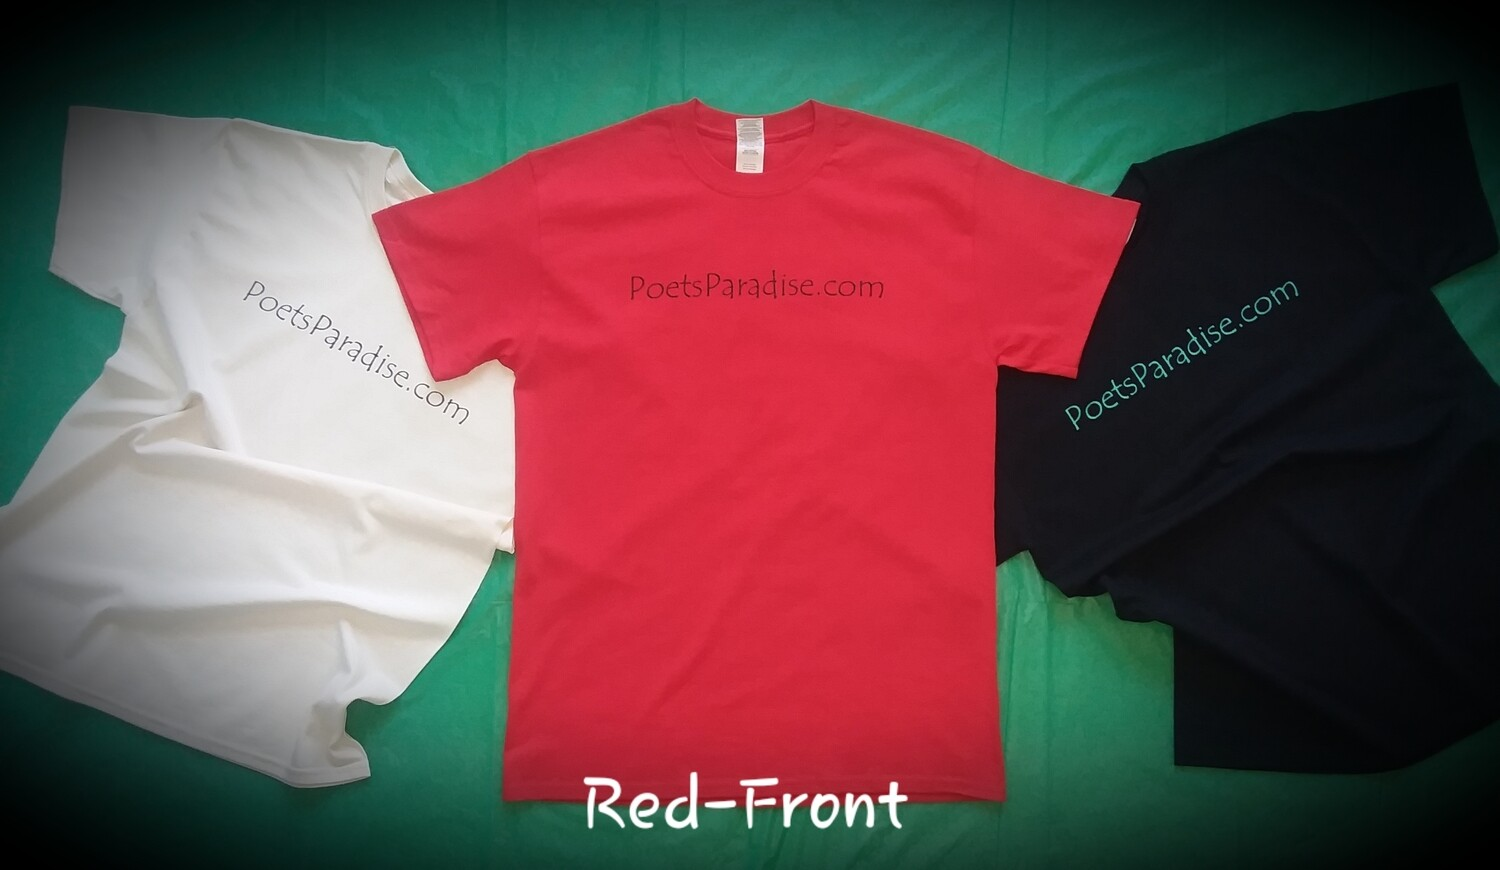 Poets Paradise T-Shirt (Red)